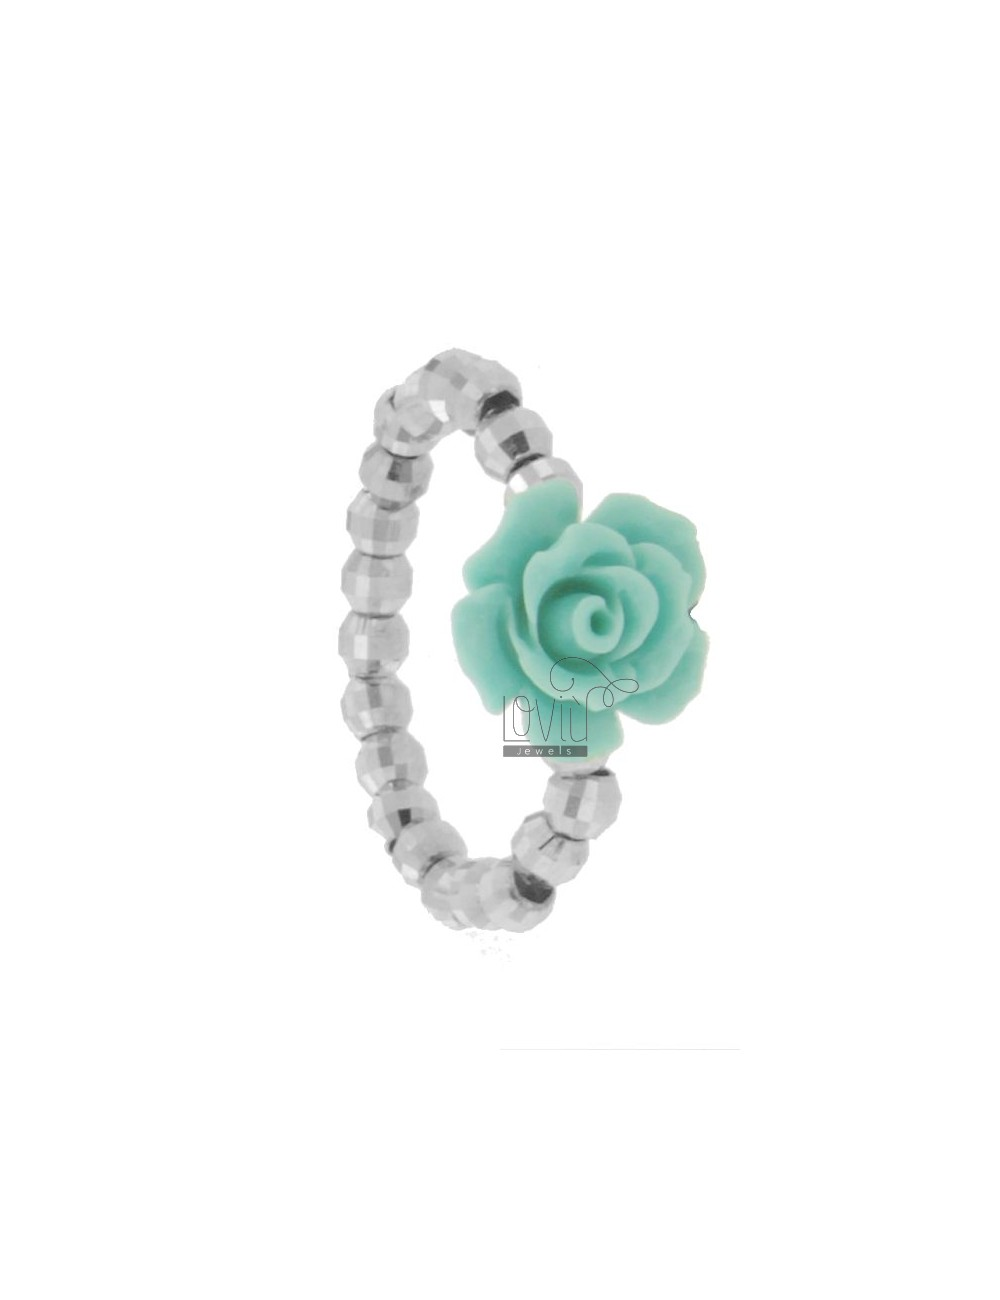 MM DIAMOND RING BAND BALL IN 3 AG RHODIUM SIZE ADJUSTABLE WITH CENTRAL ROSELLINA RESIN COLOR TURQUOISE